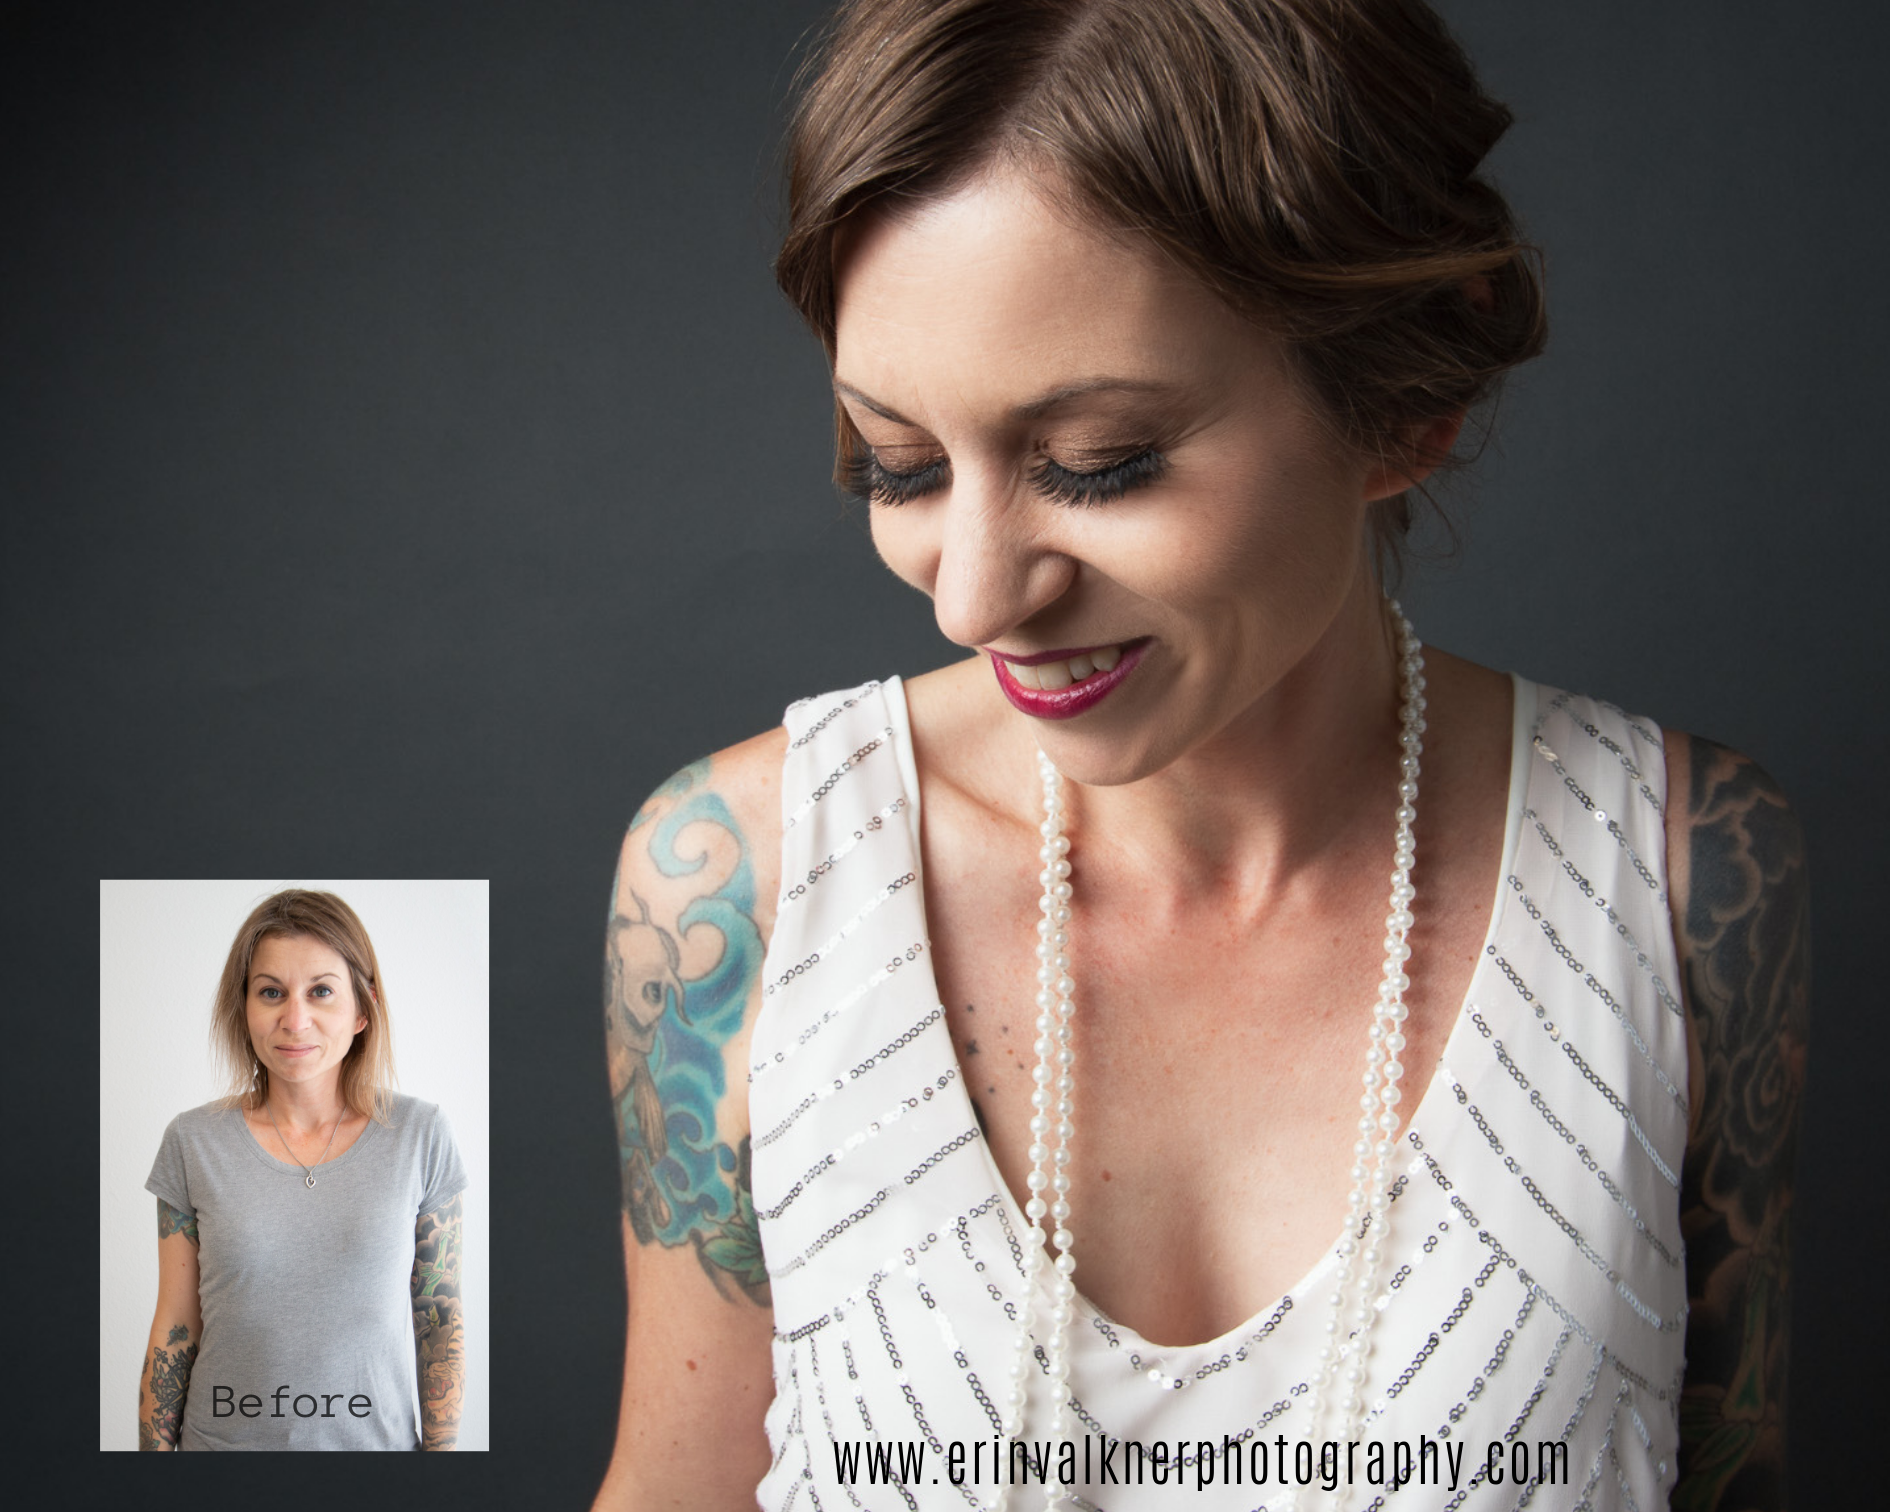 erin-valkner-photography-new-braunfels-before-after-flapper-portrait